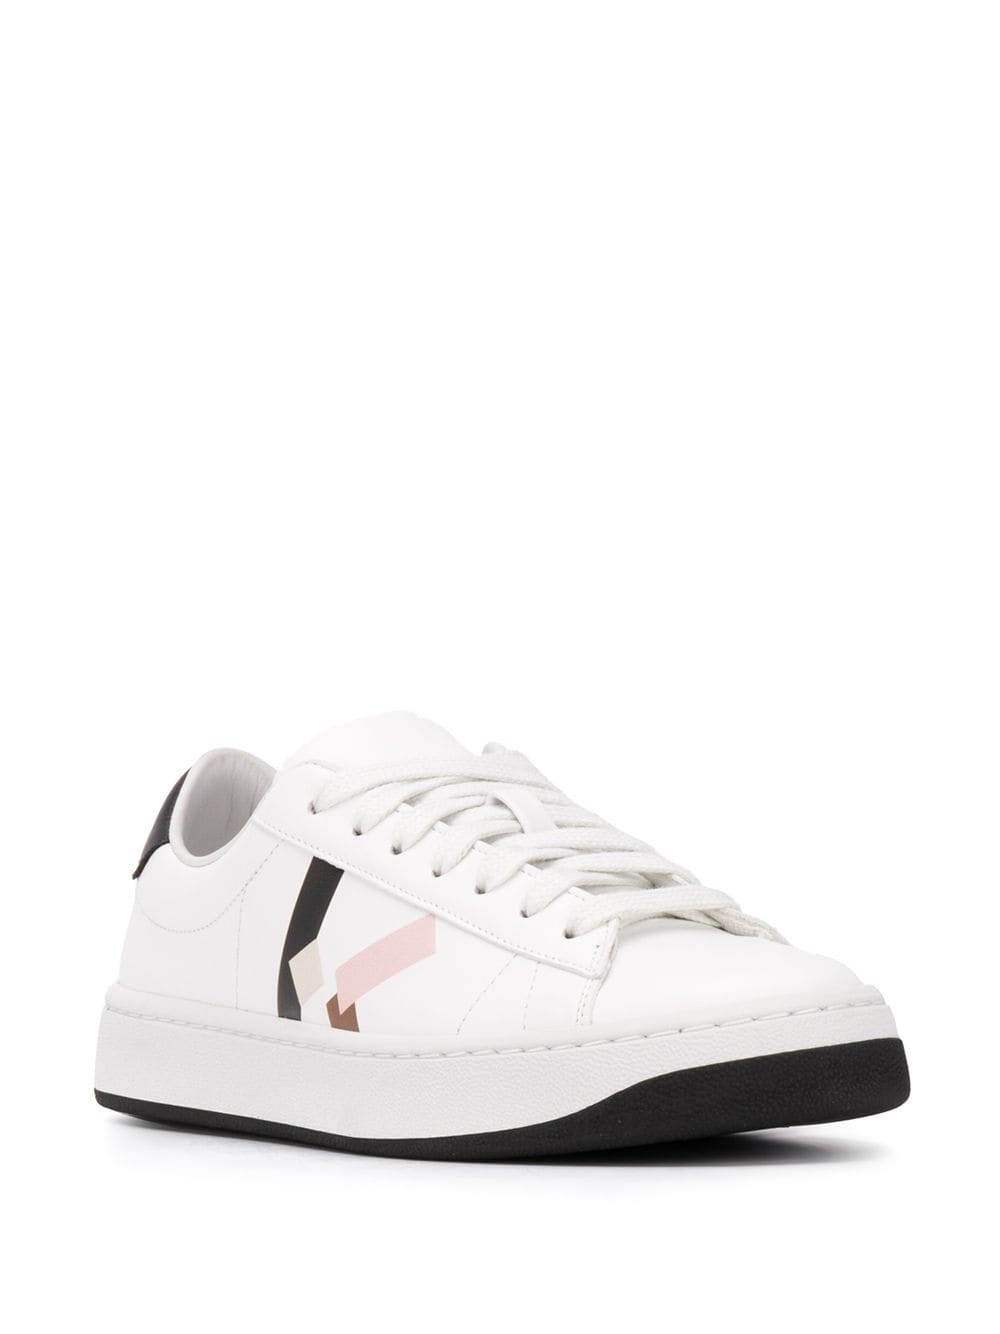 KENZO WOMEN K Logo Low Top Sneakers White